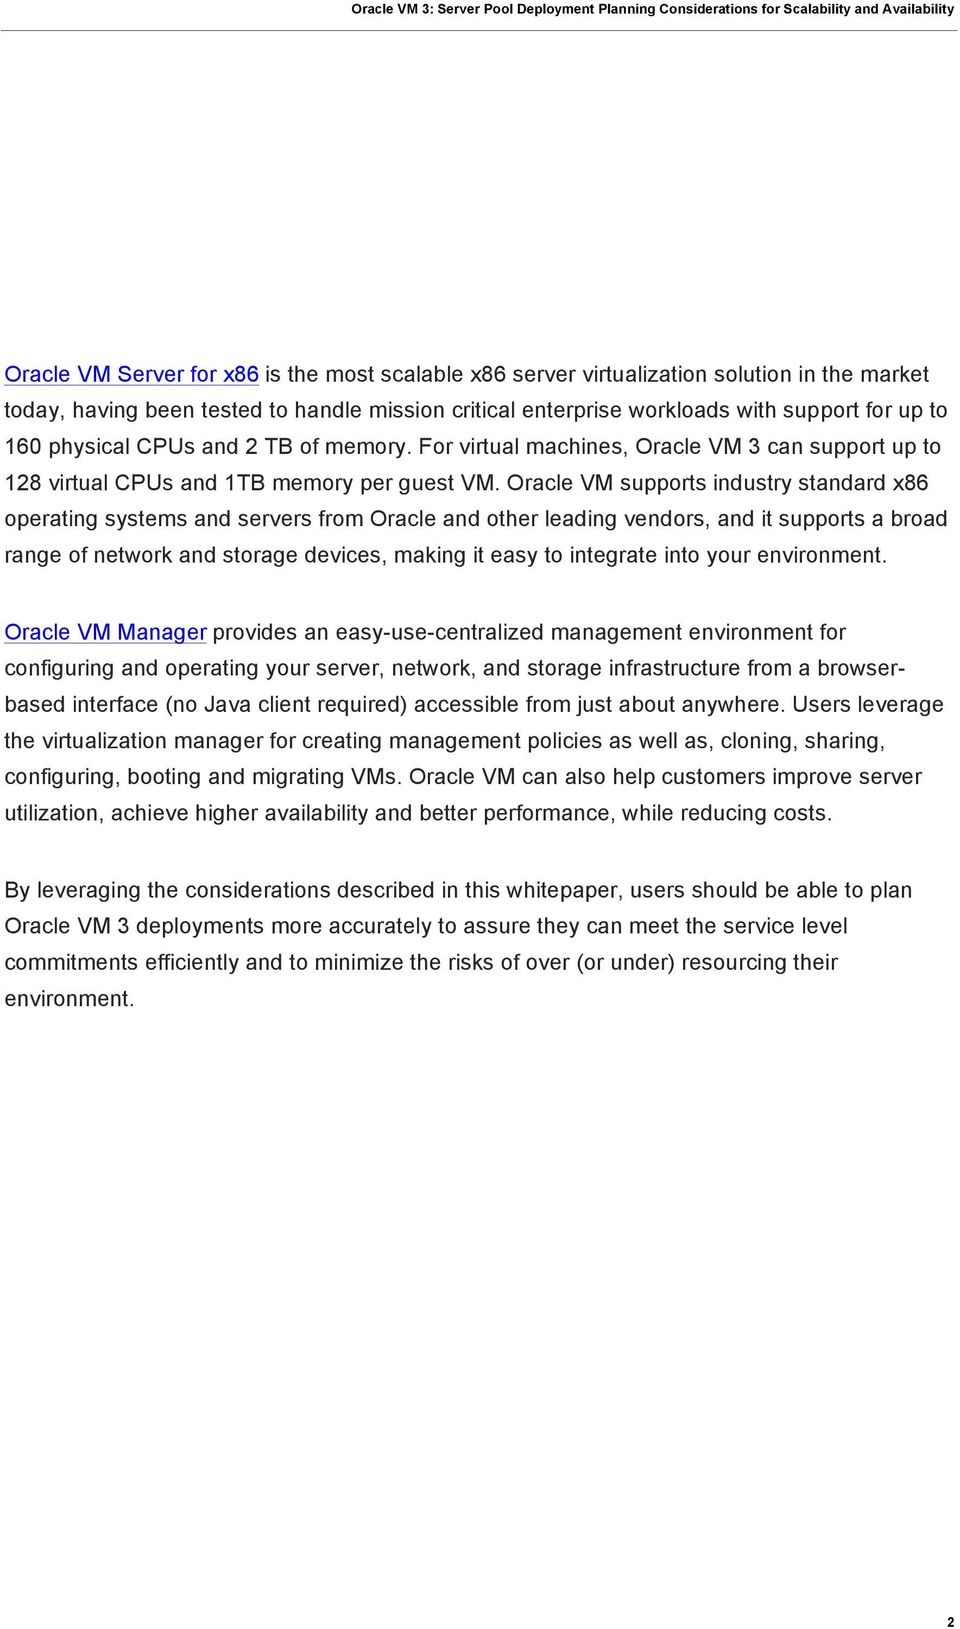 Oracle VM supports industry standard x86 operating systems and servers from Oracle and other leading vendors, and it supports a broad range of network and storage devices, making it easy to integrate